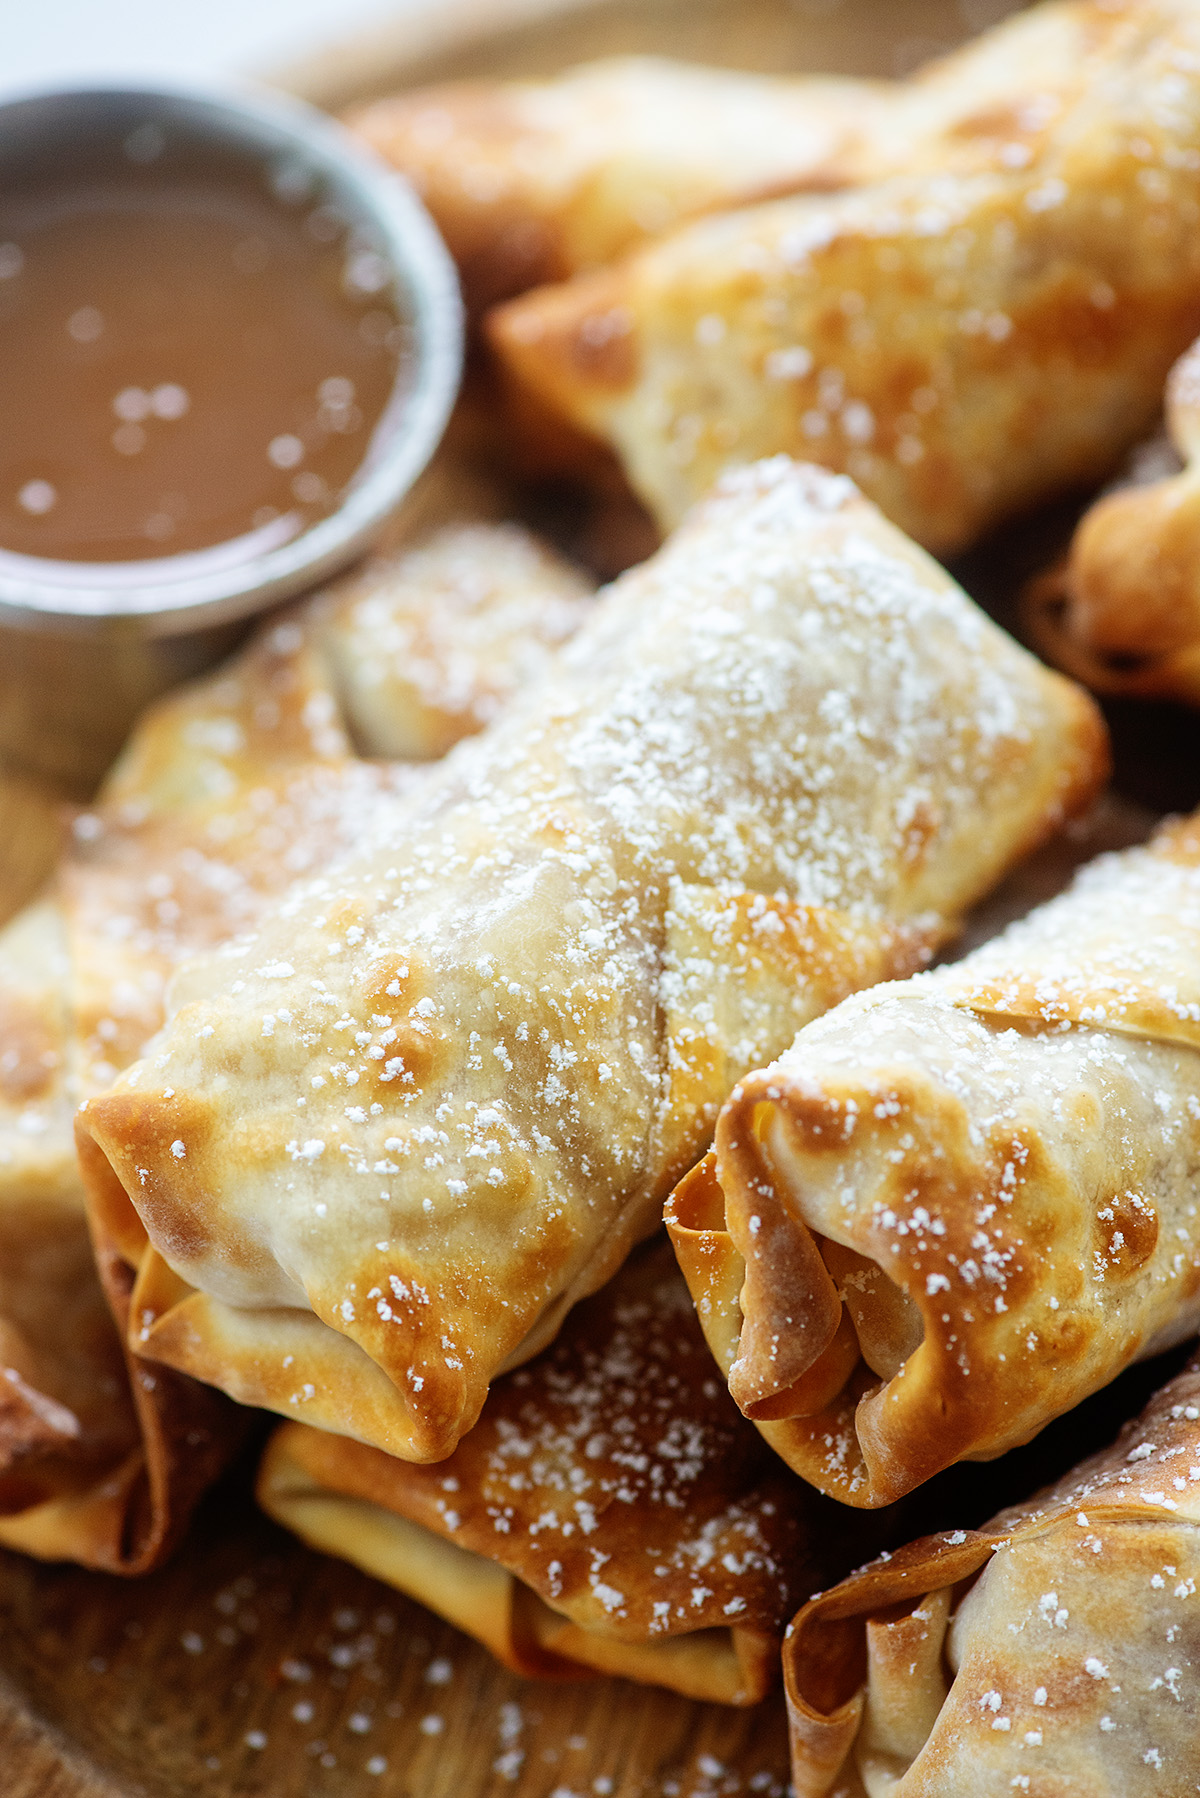 Cose up of stackd egg rolls with powdered sugar on them